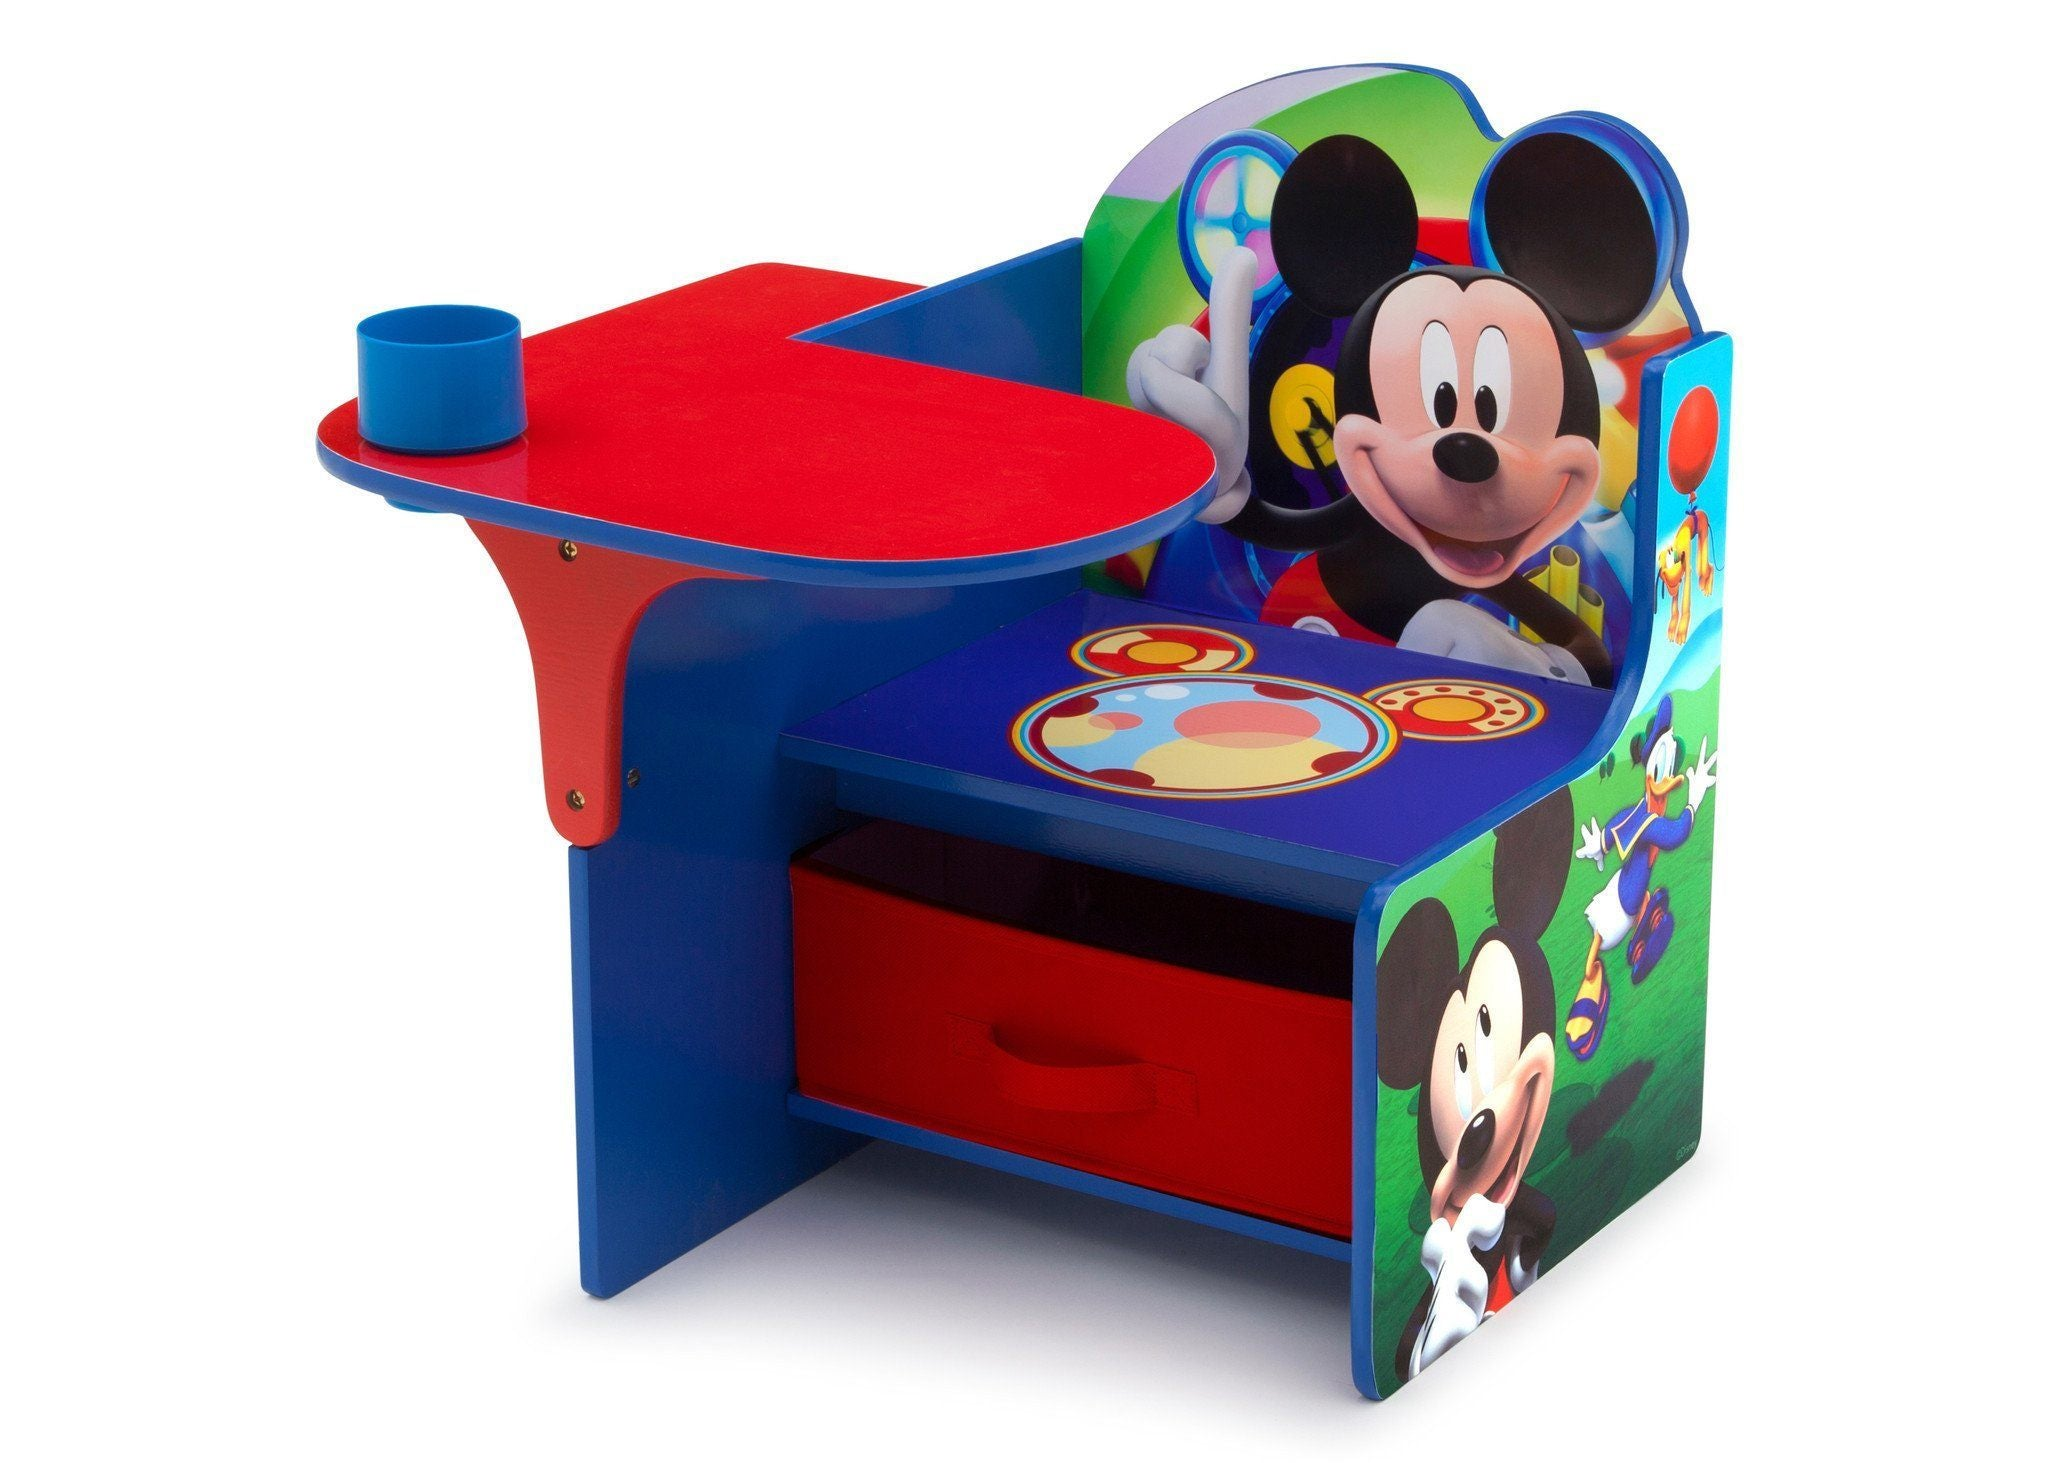 ... Delta Children Mickey Mouse Chair Desk With Storage Bin, Left View A2a  ...